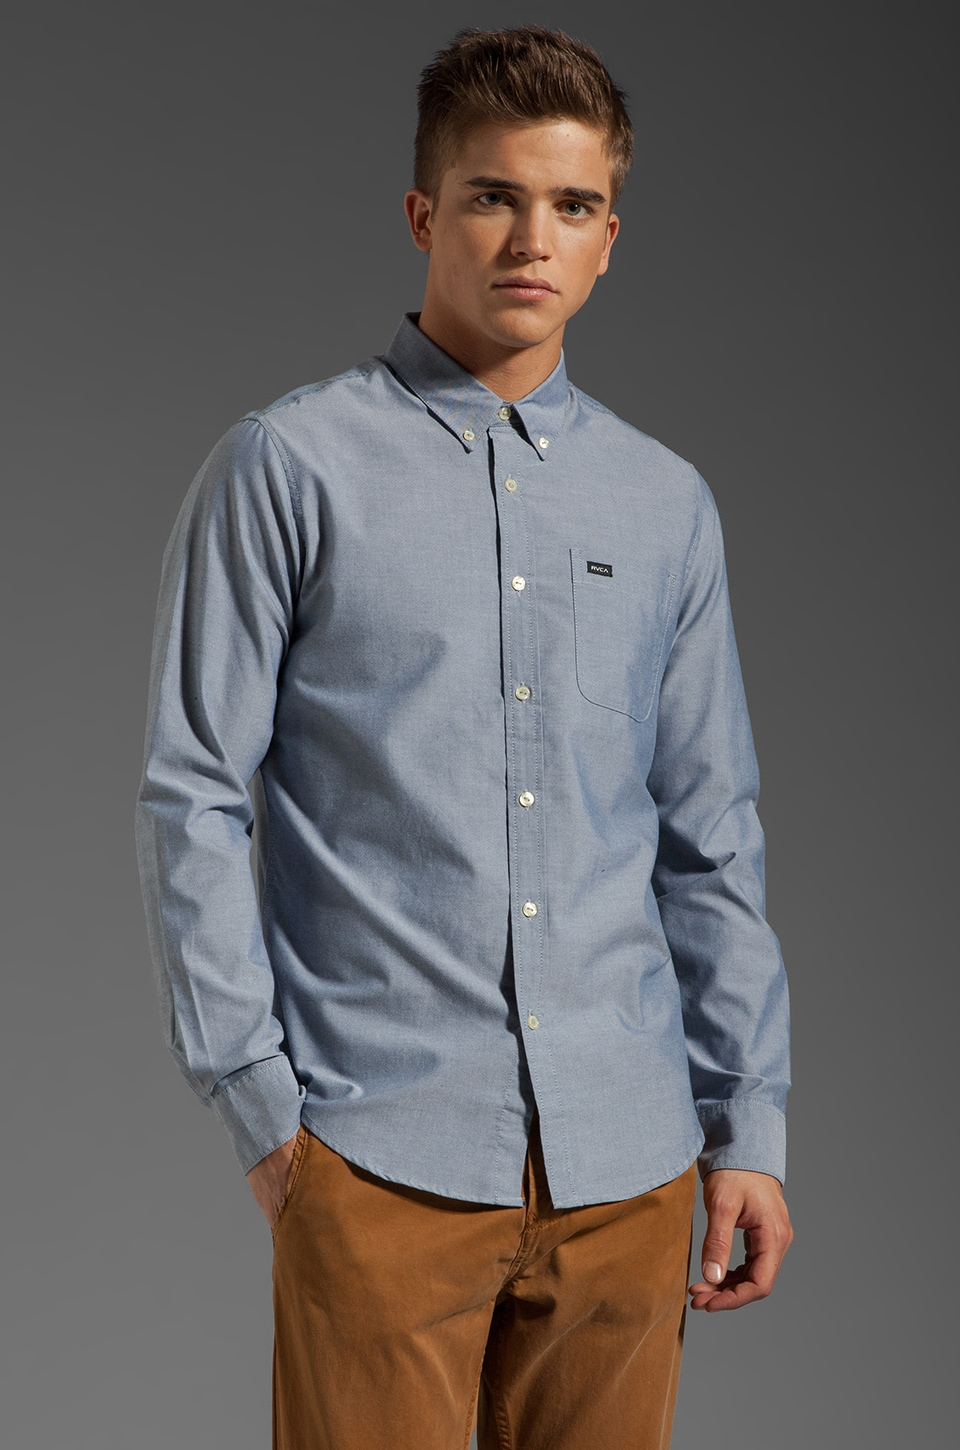 RVCA That'll Do Oxford L/S Shirt in Distant Blue